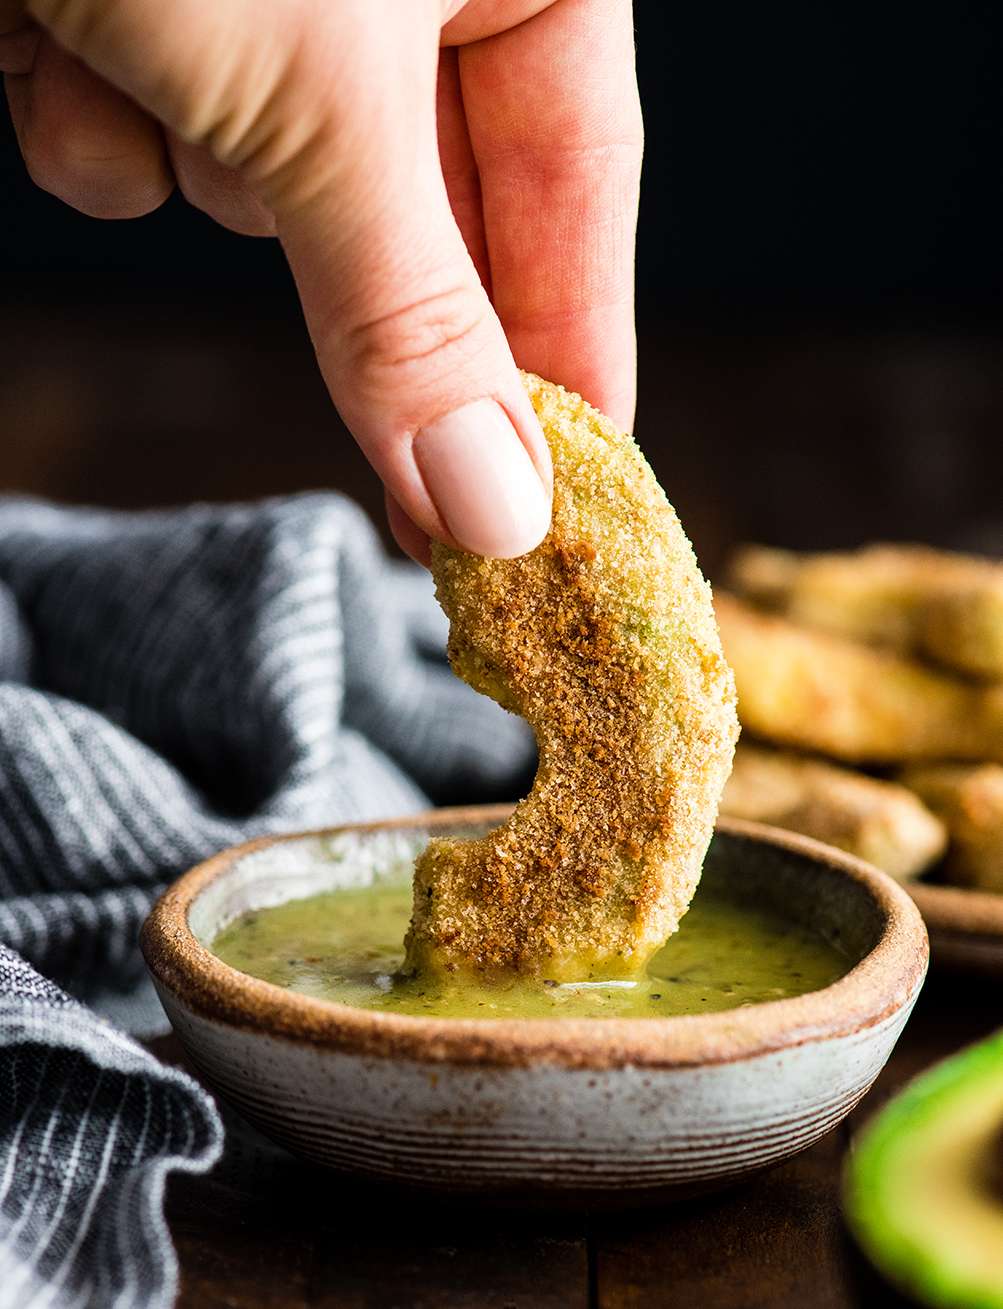 Front view of a hand dipping a Baked Avocado Fry in dipping sauce